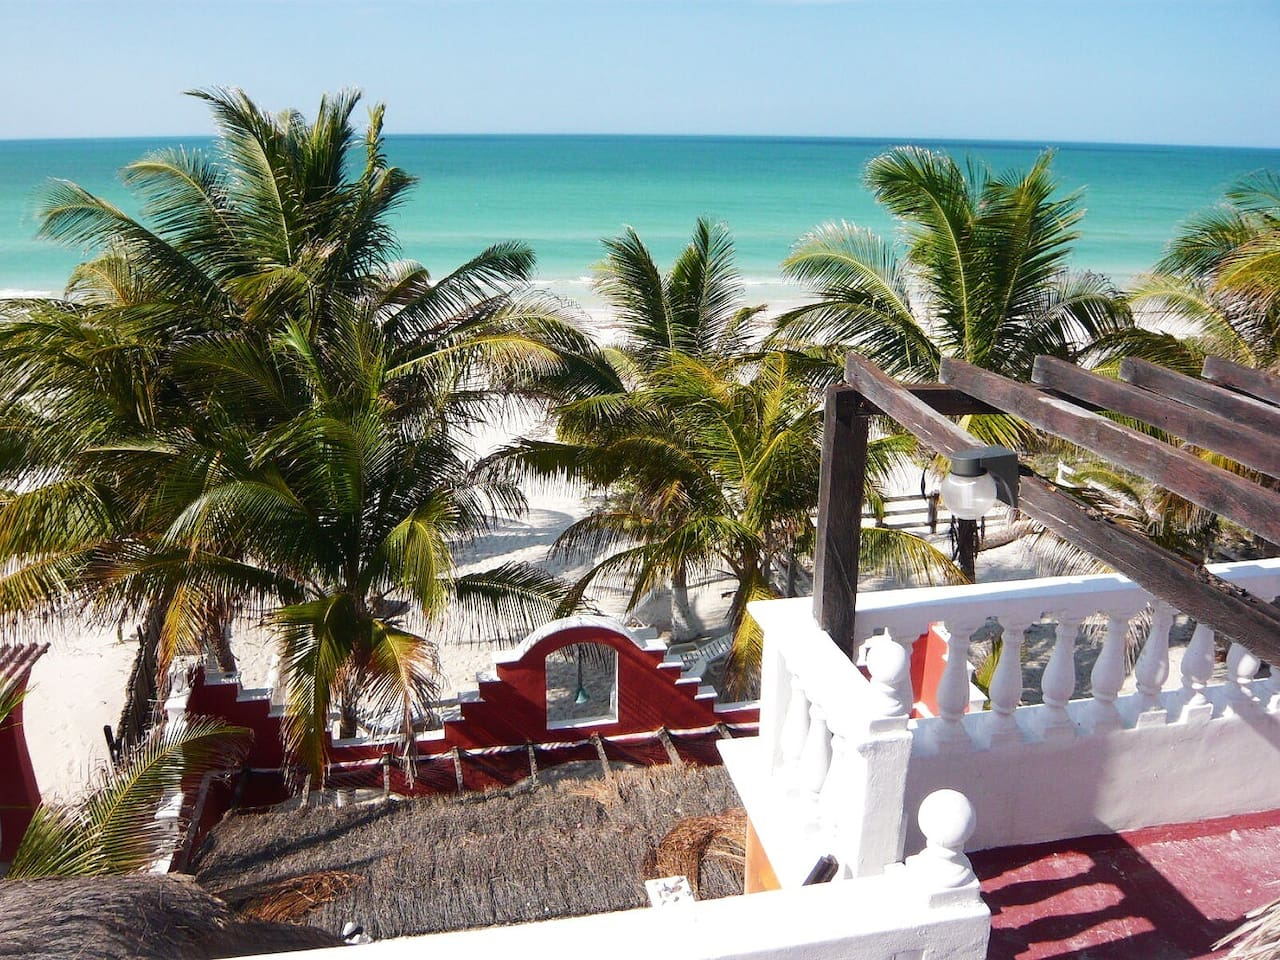 Stunning View on the Prestine Beach of El Cuyo, seen from the Beachfront terrace , near Holbox